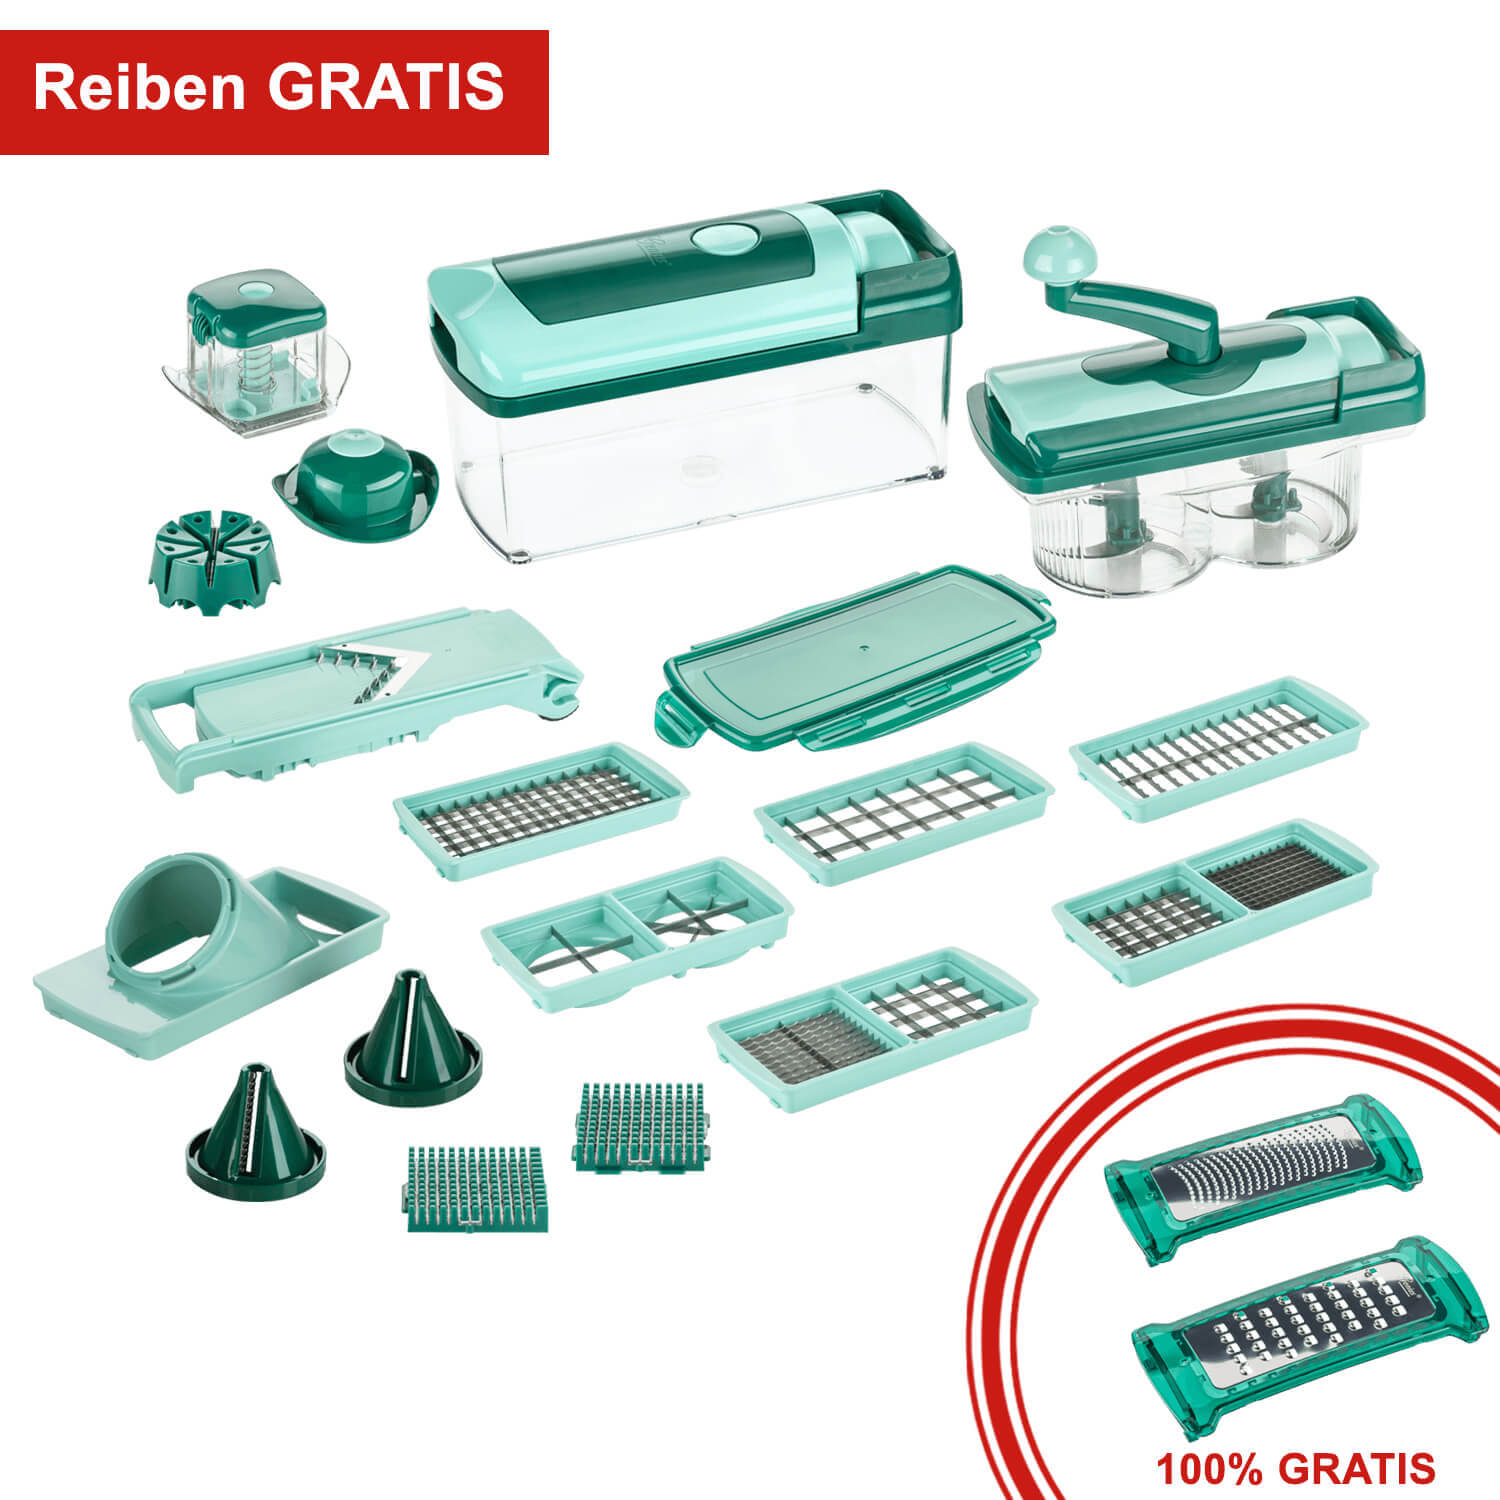 nicer dicer fusion inkl gratis reiben schneidger t genius genius online shop. Black Bedroom Furniture Sets. Home Design Ideas